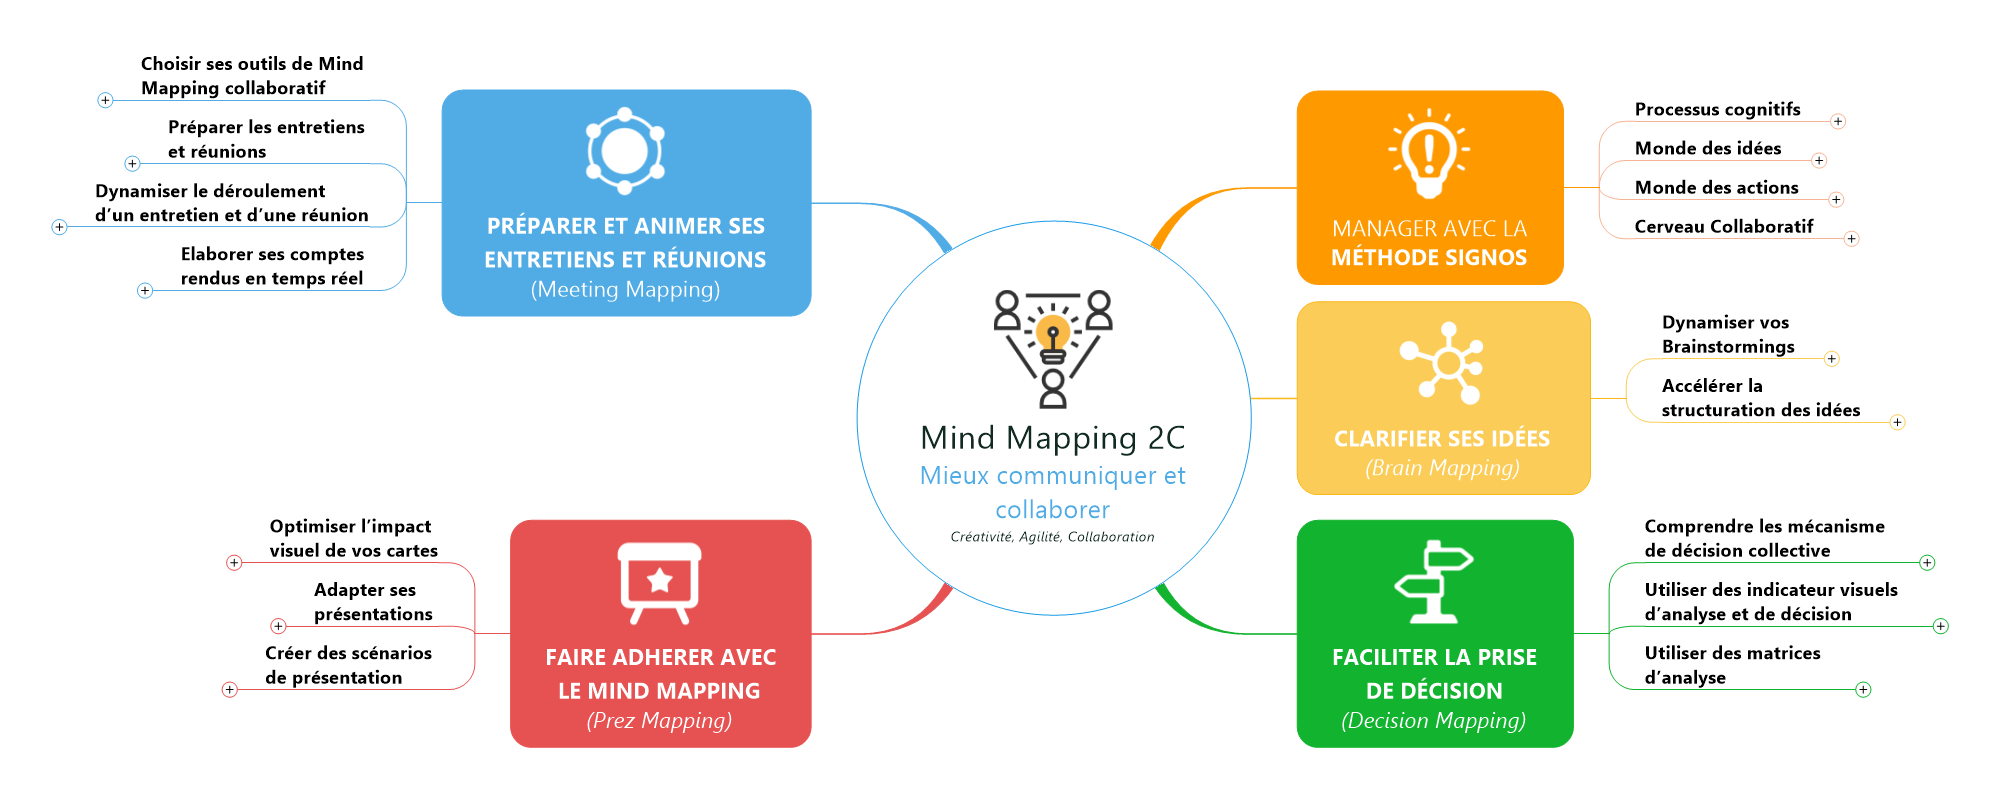 Programme Mind Mapping 2C